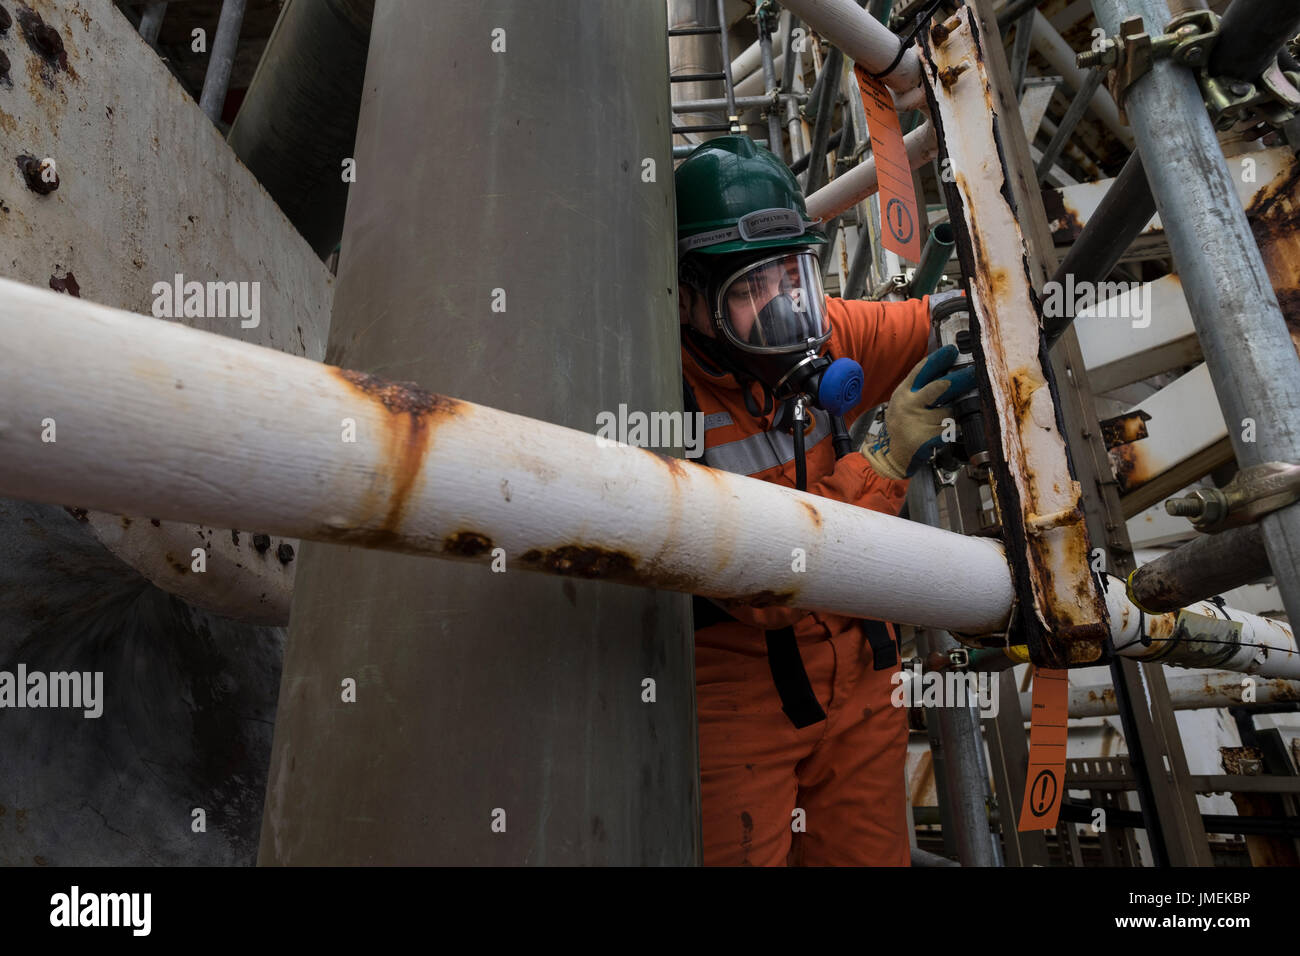 Colour unedited image of a Spanish worker on the decommissioning of the BP Miller platform in the north sea. credit: LEE RAMSDEN / ALAMY - Stock Image